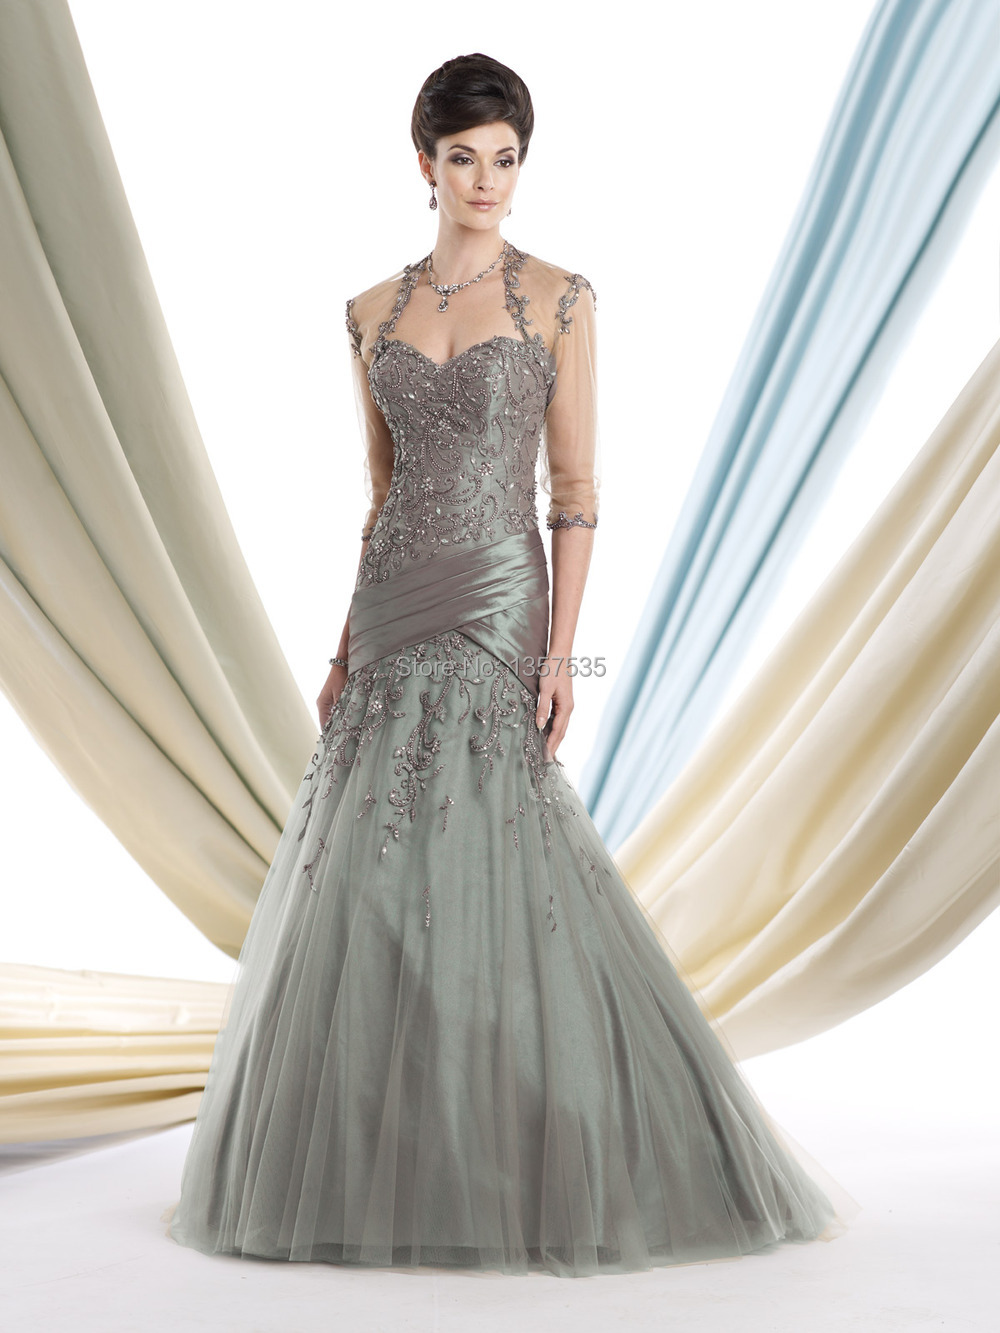 Mother of the bride dresses orlando cheap wedding dresses for Discount wedding dresses orlando fl